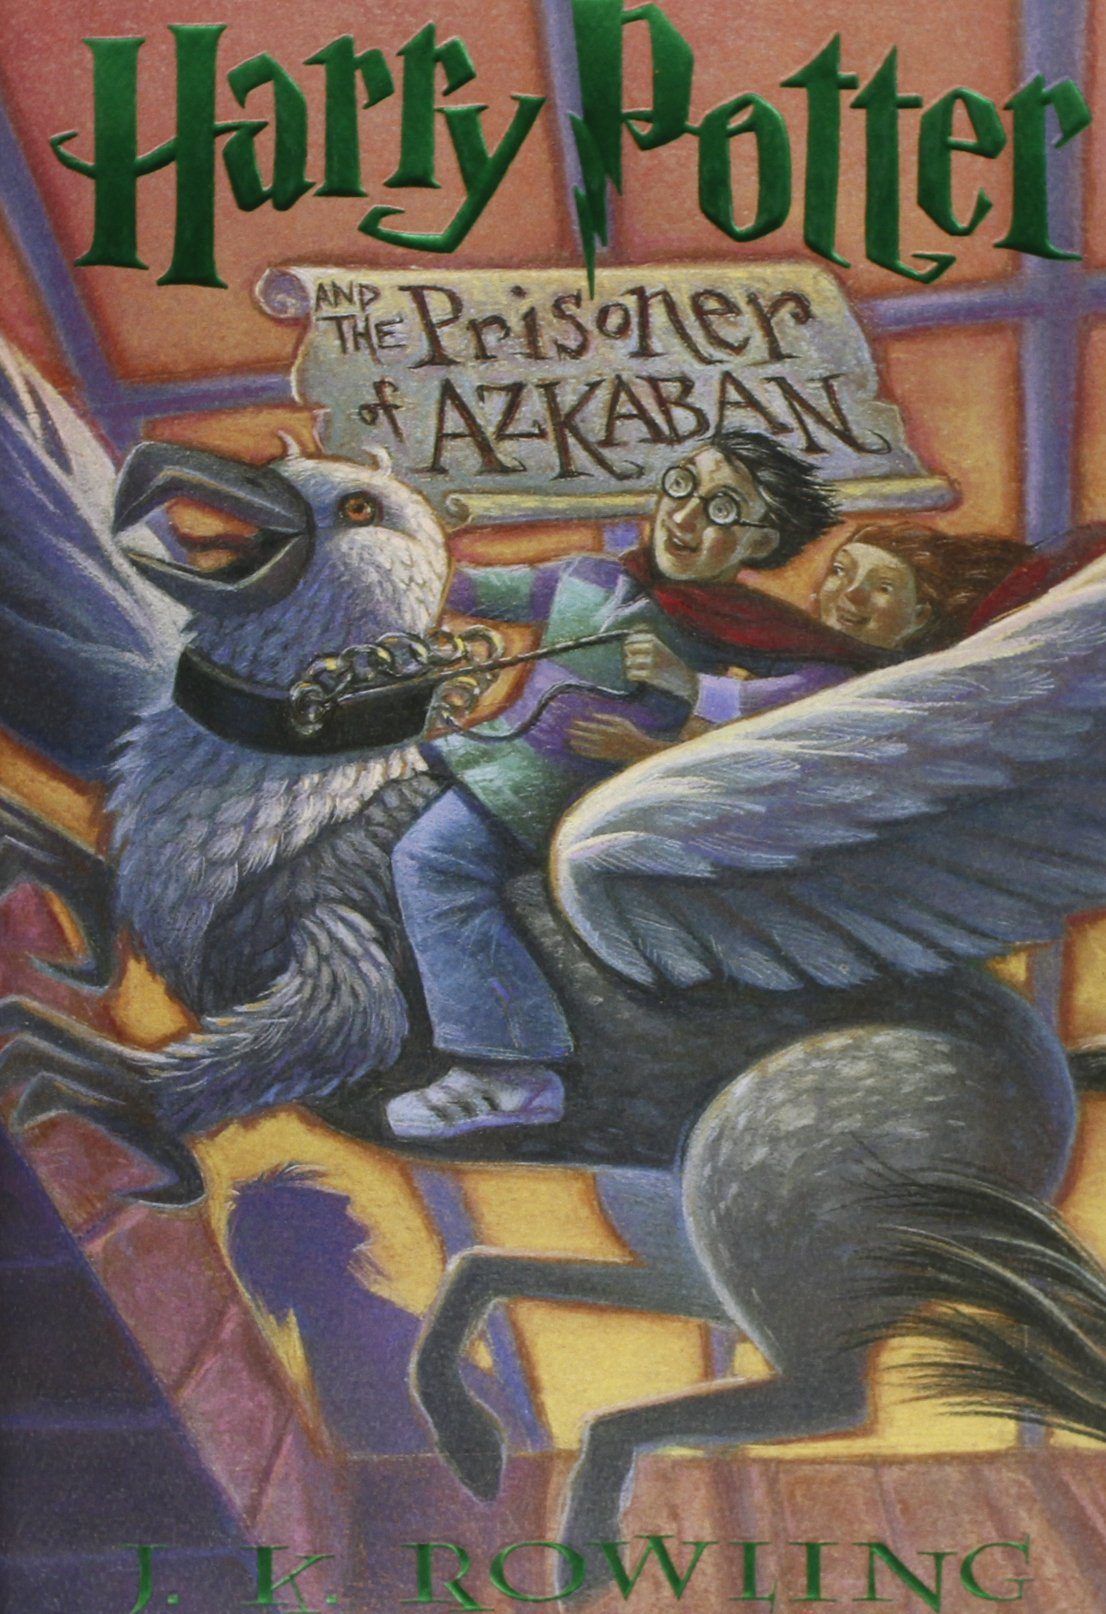 Image result for harry potter and the prisoner of azkaban book cover